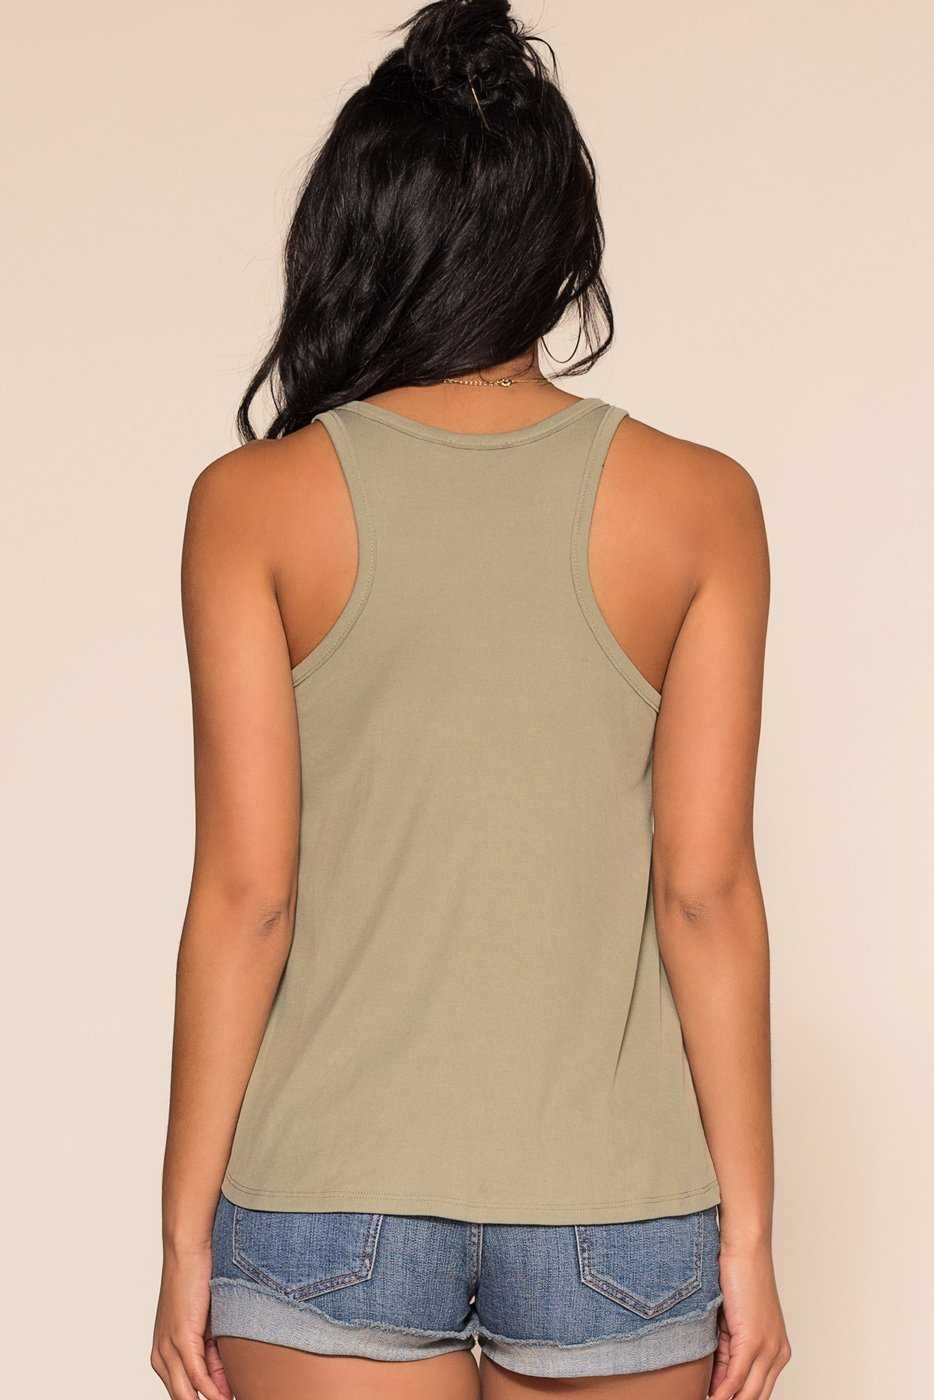 Tops - Power Vibes Tank Top